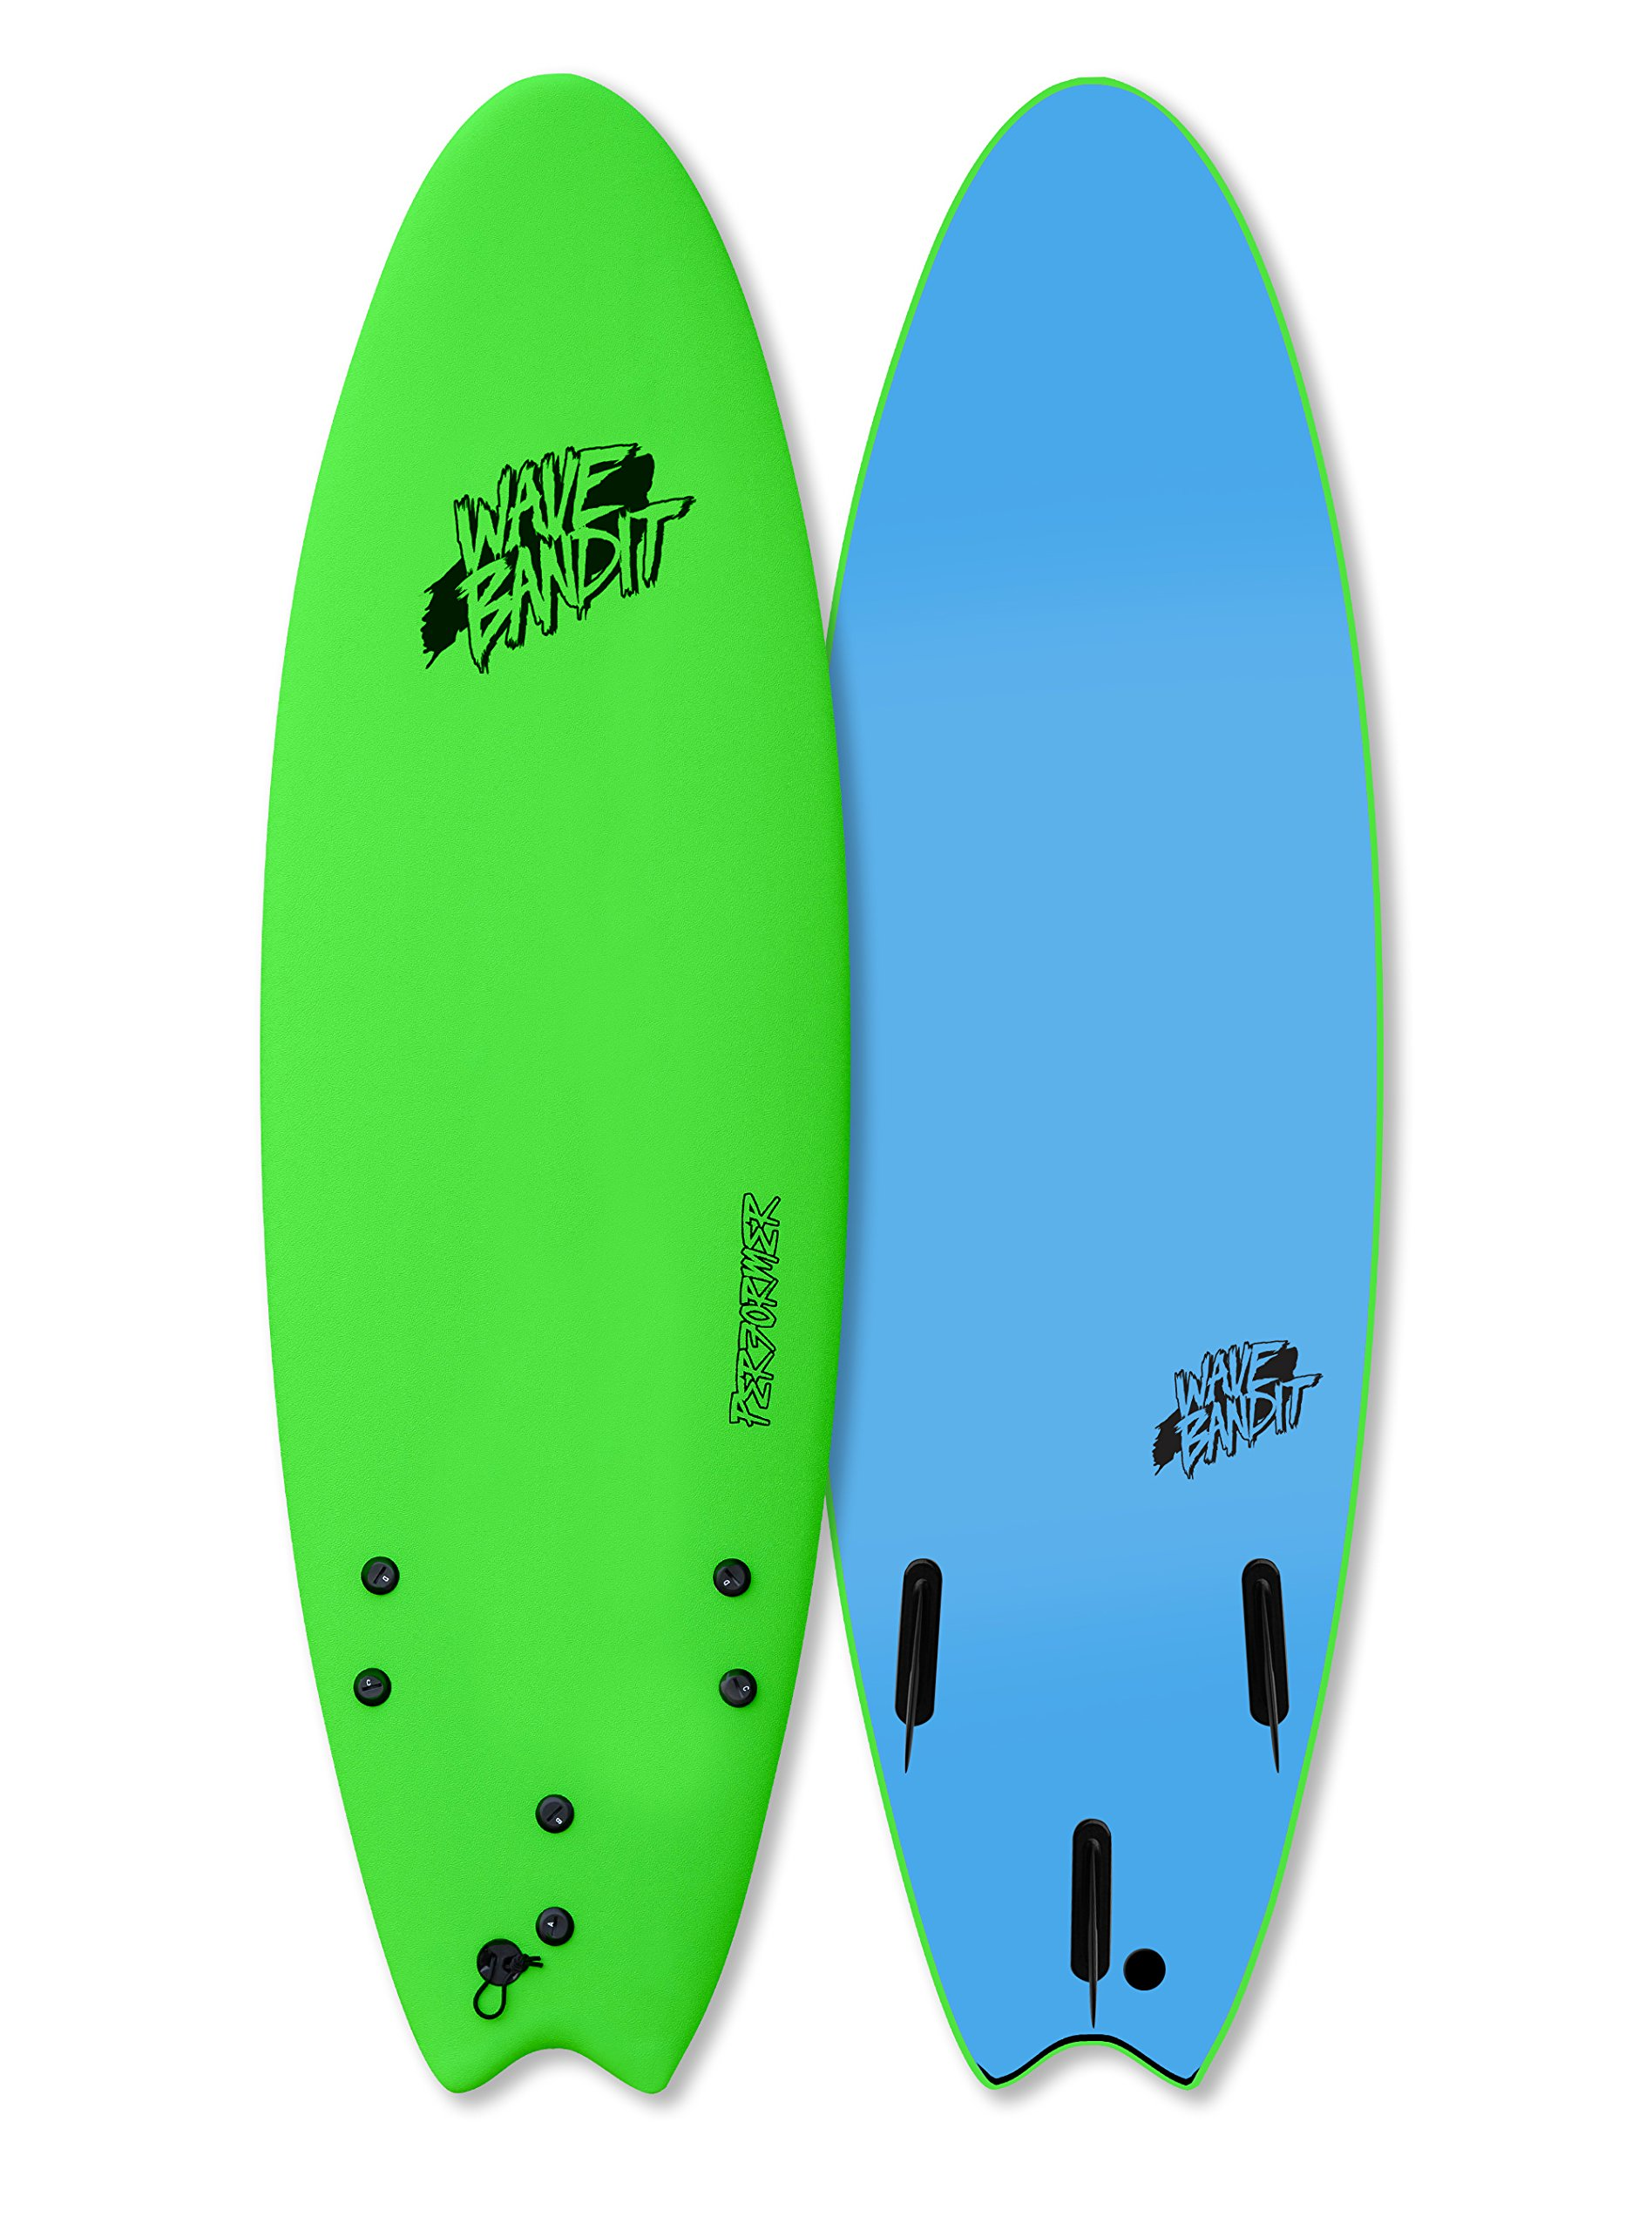 Wave Bandit Performer Tri Surfboard, Neon Green, 6'6'' by Wave Bandit